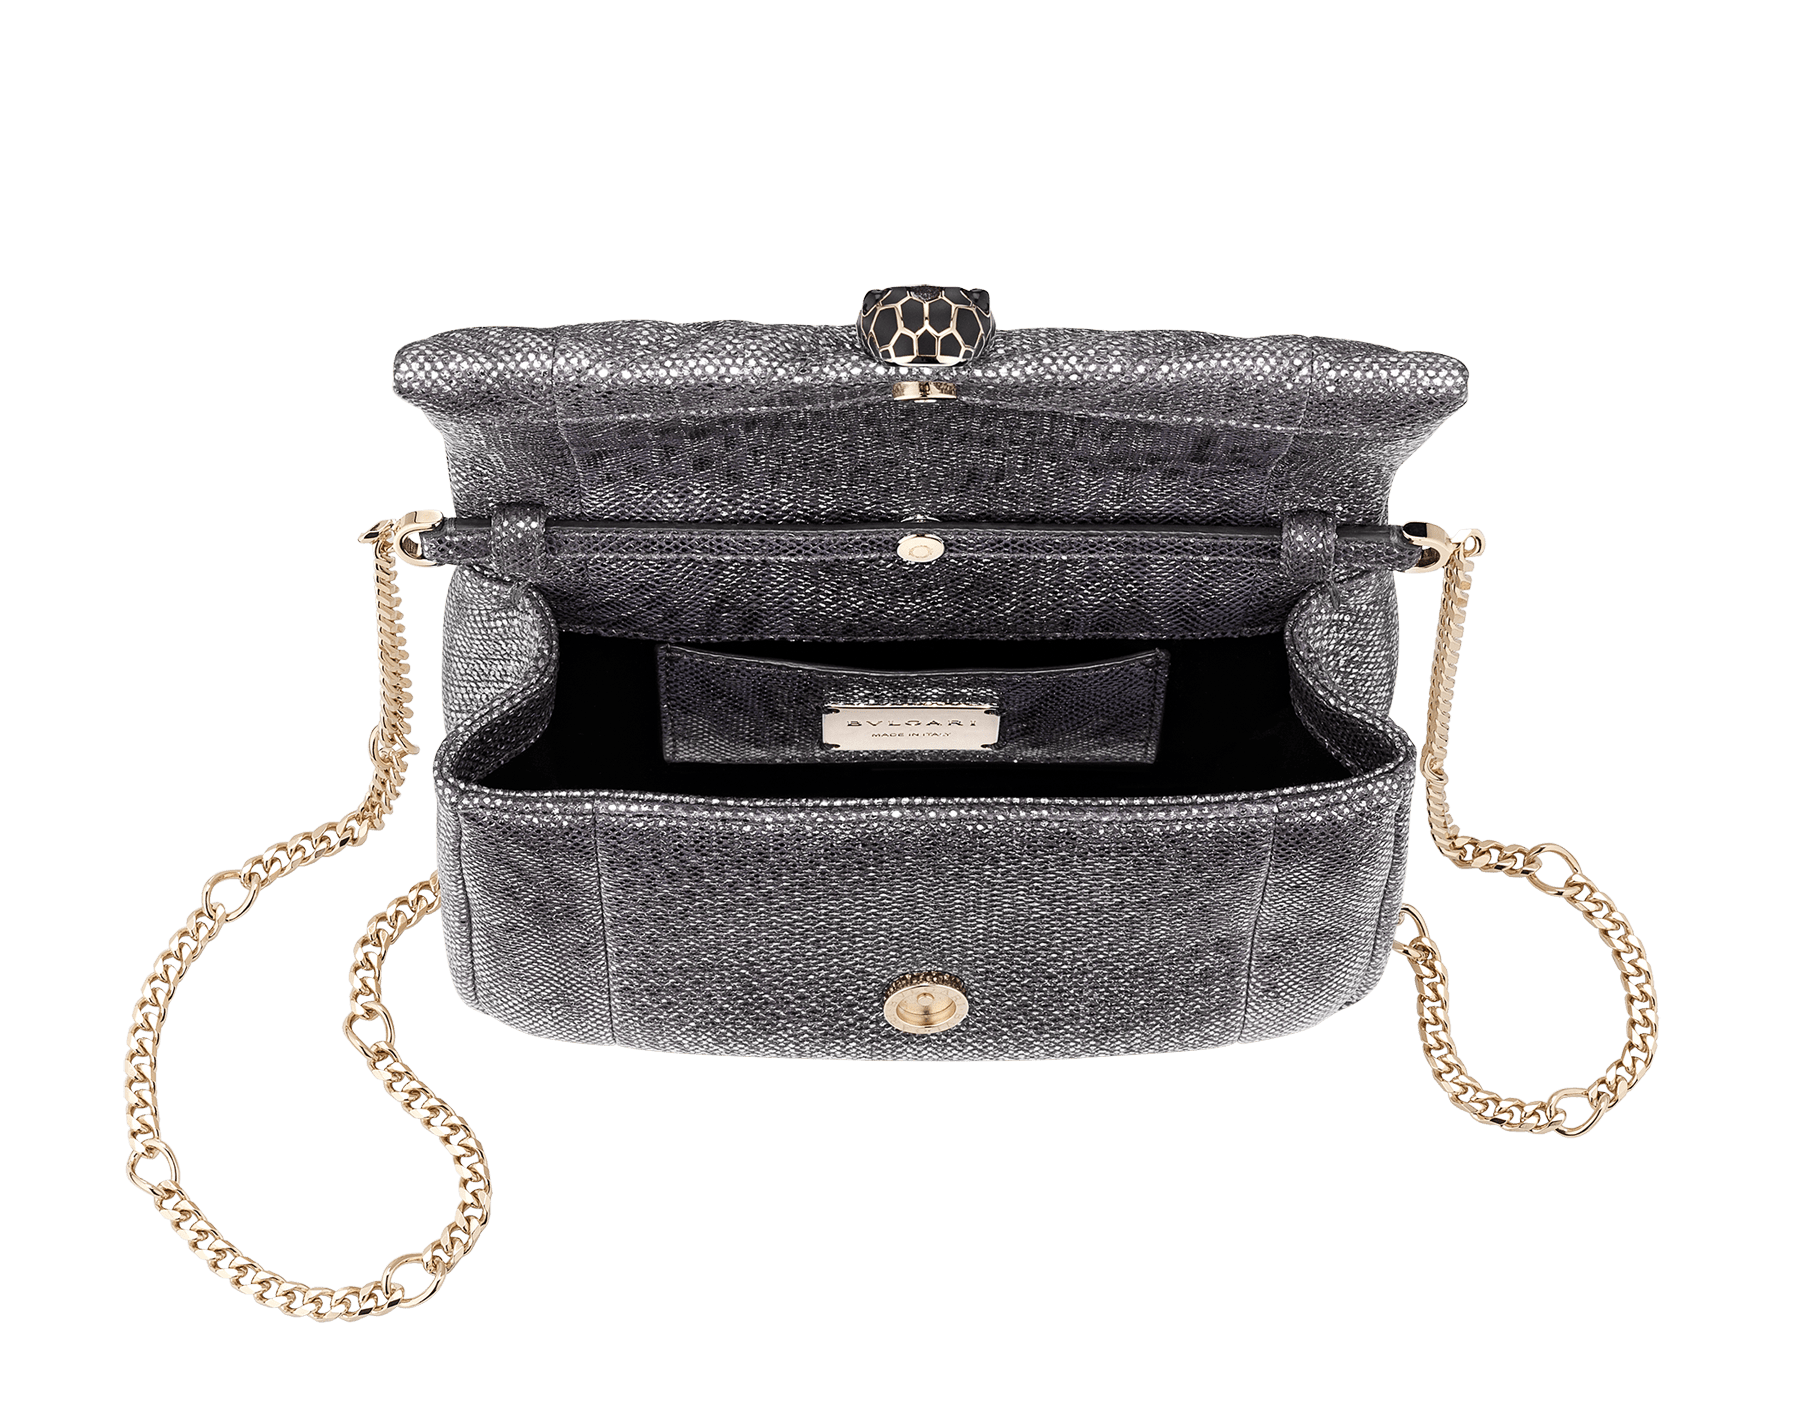 Serpenti Cabochon micro bag in soft matelassé white agate metallic karung skin, with a graphic motif. Light gold brass plated tempting snake head closure in black and glitter white agate enamel and black onyx eyes. 1023-MK image 4